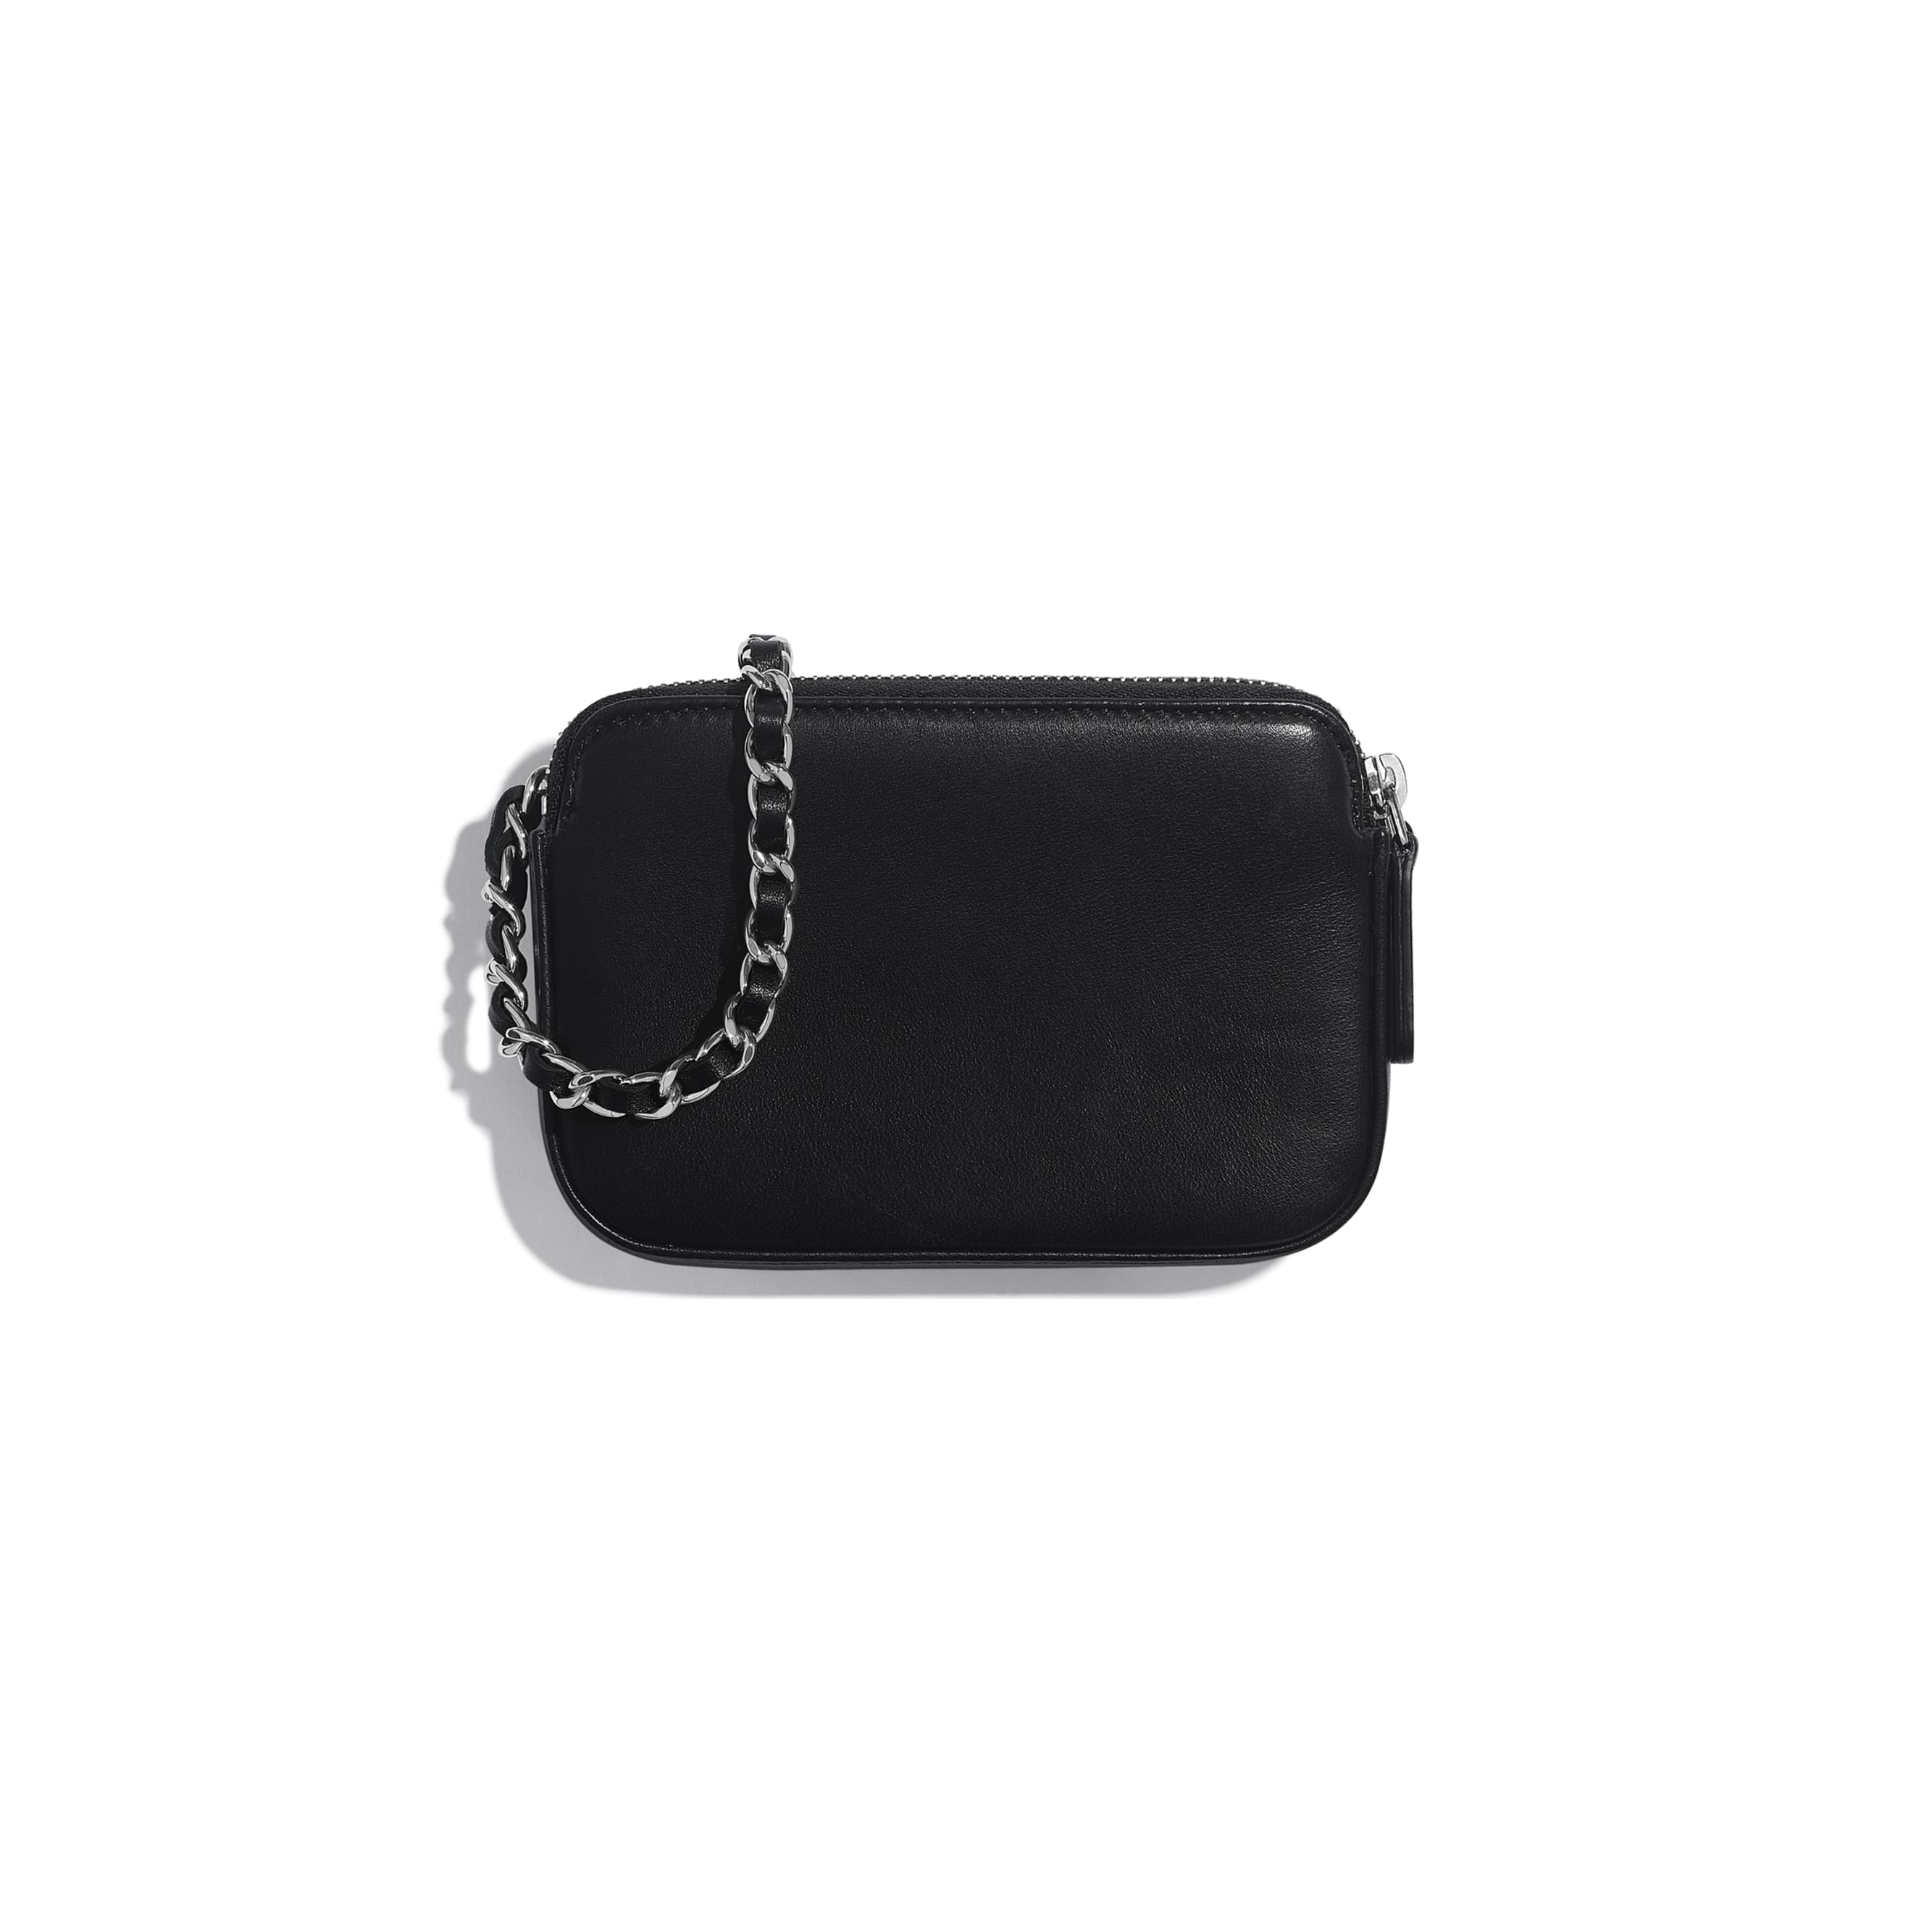 Clutch With Chain - Black, Silver & White - Lambskin, Sequins & Silver-Tone Metal - Alternative view - see standard sized version